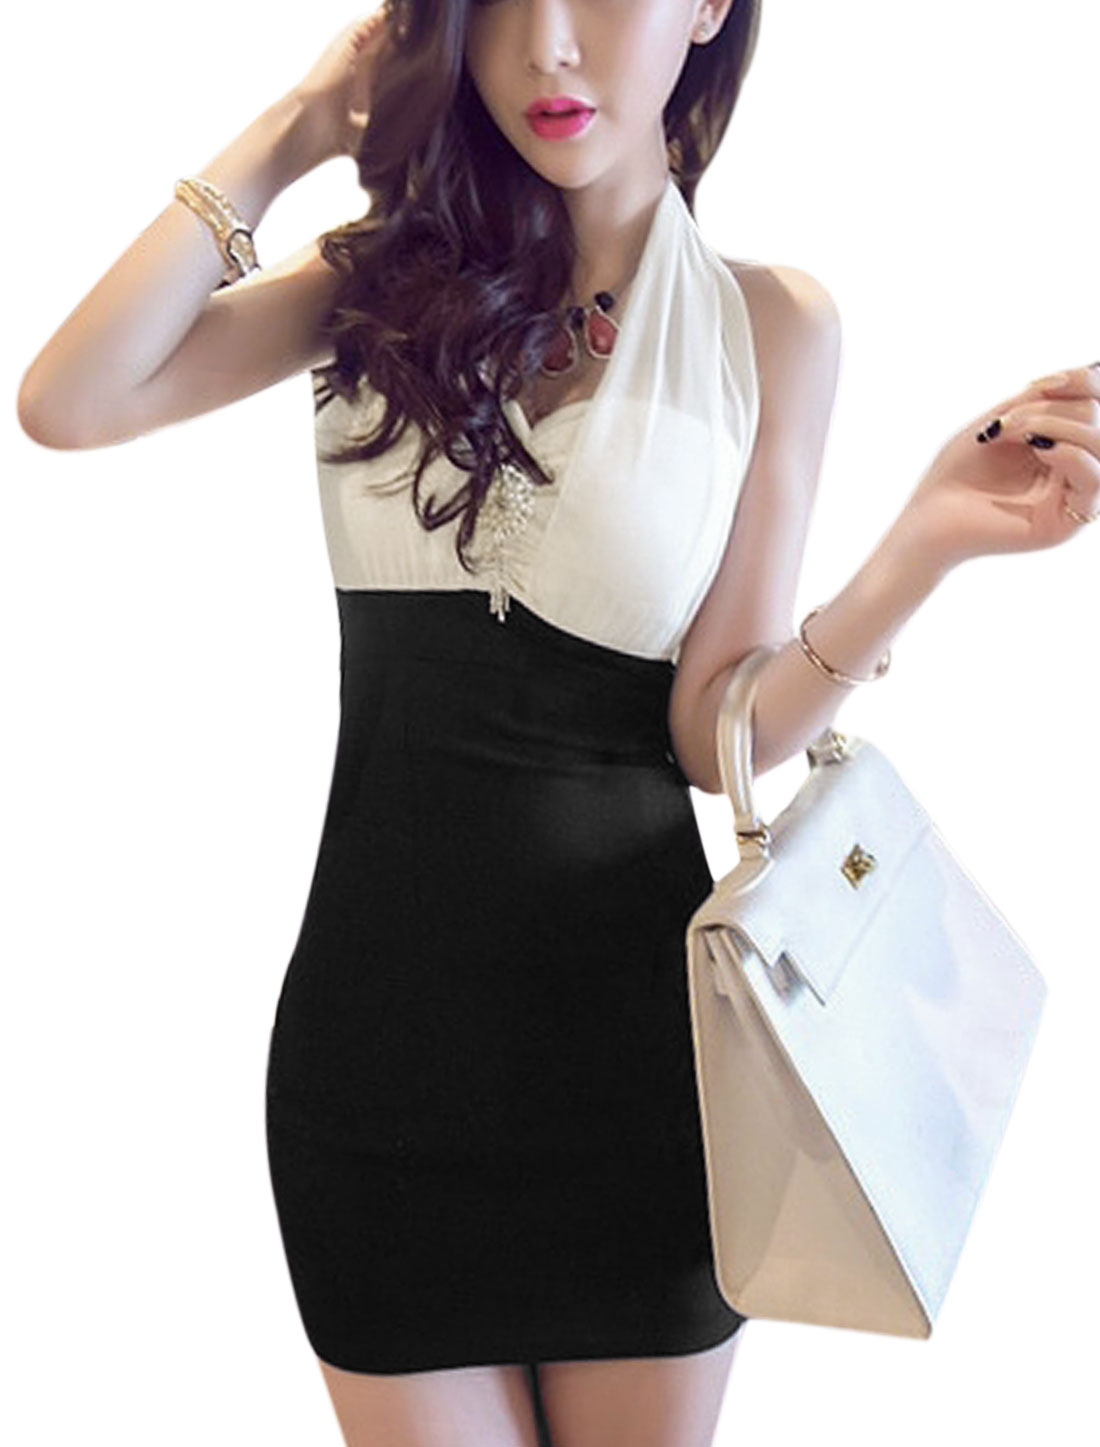 Women Halter Neck Chiffon Panel Sweetheart Neckline Sheath Dress White Black M